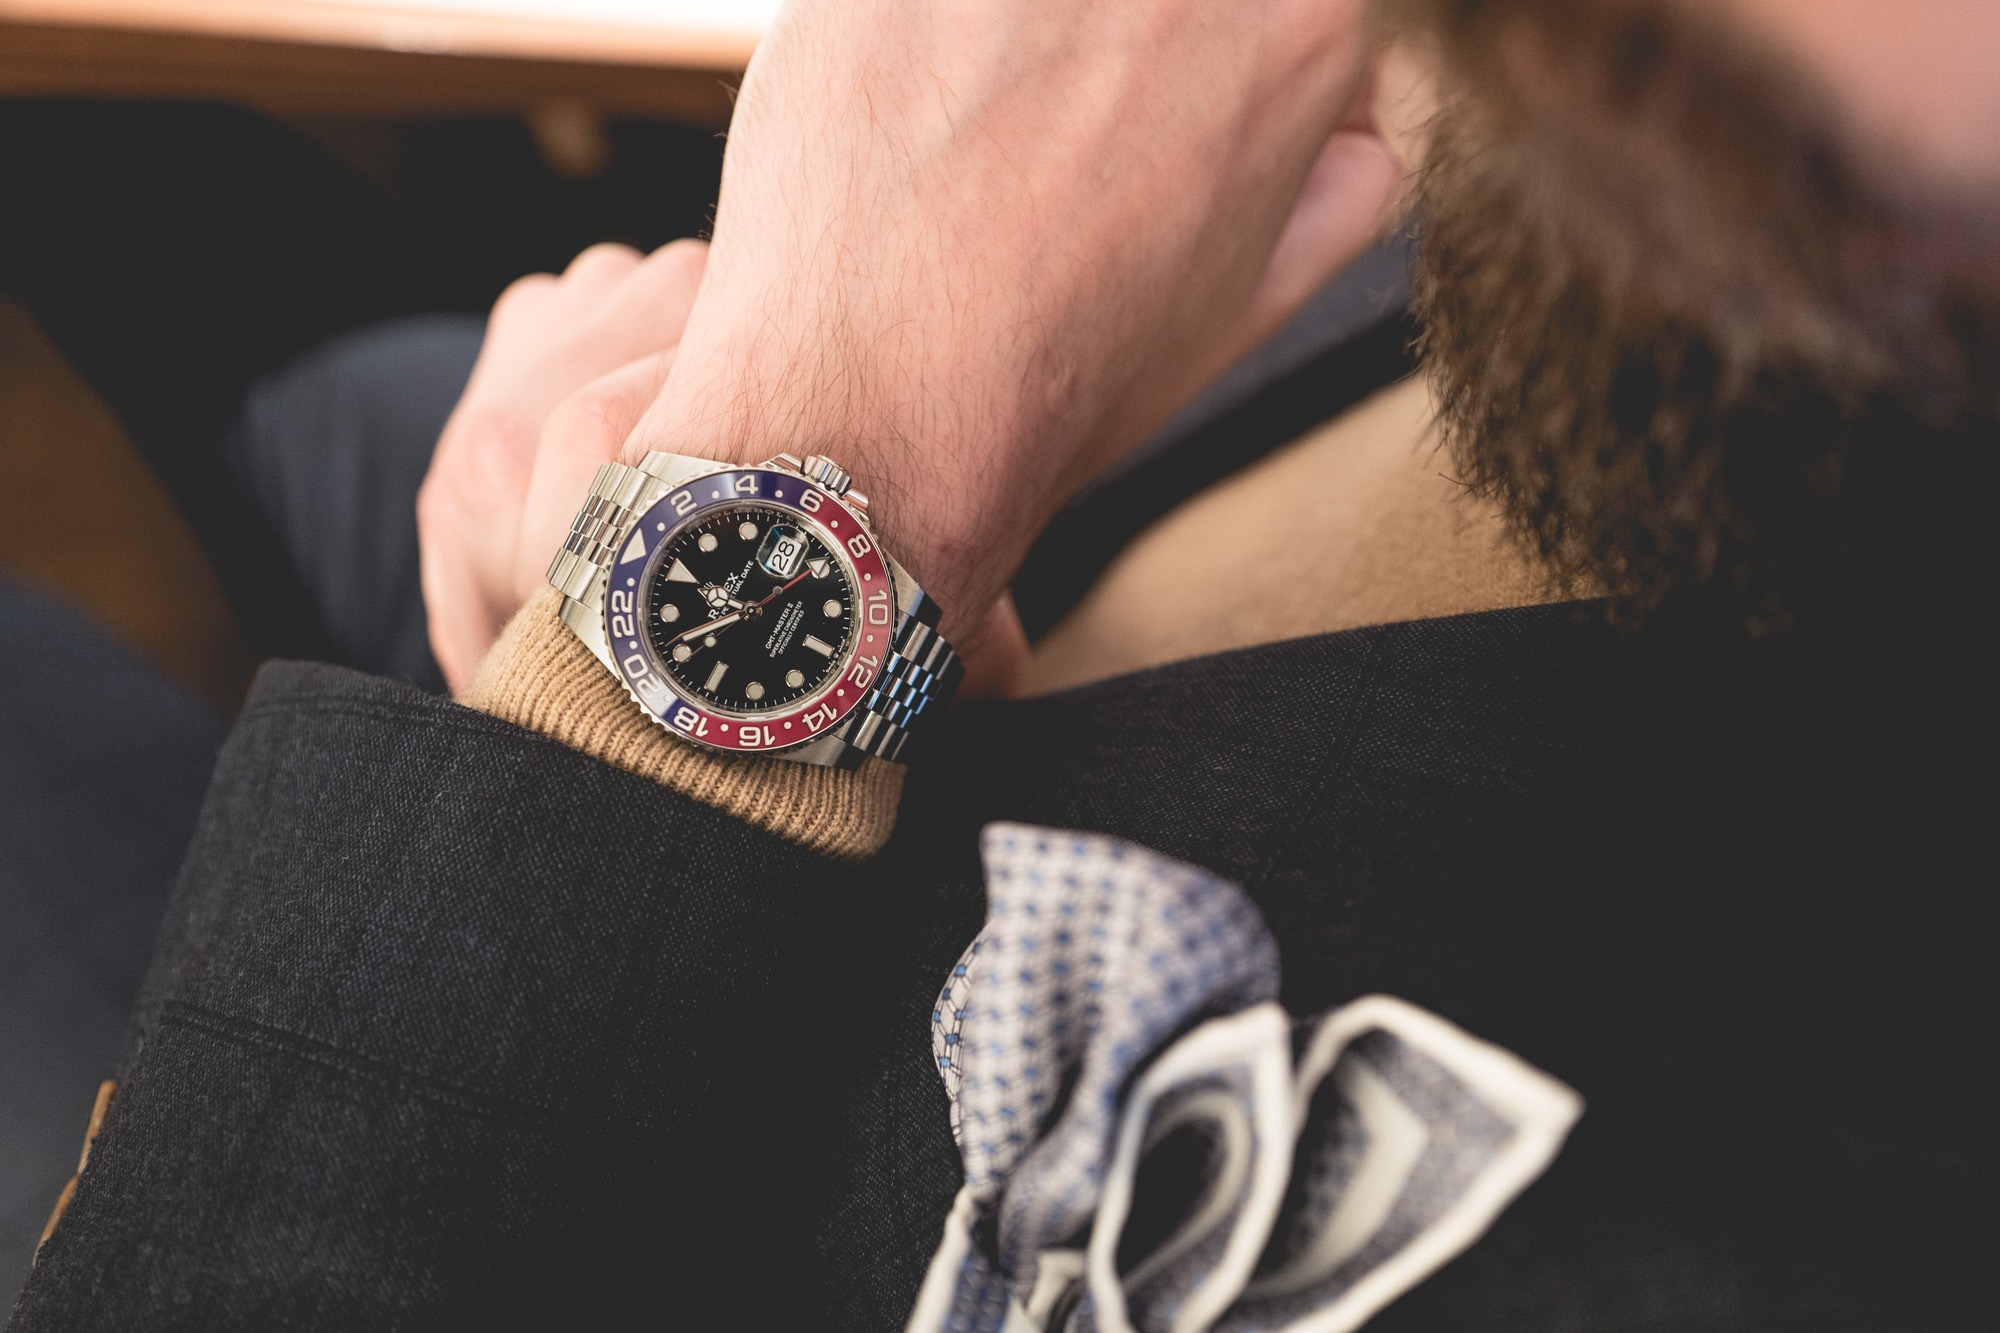 Baselworld 2018 - Rolex GMT Master II - Acier - Style